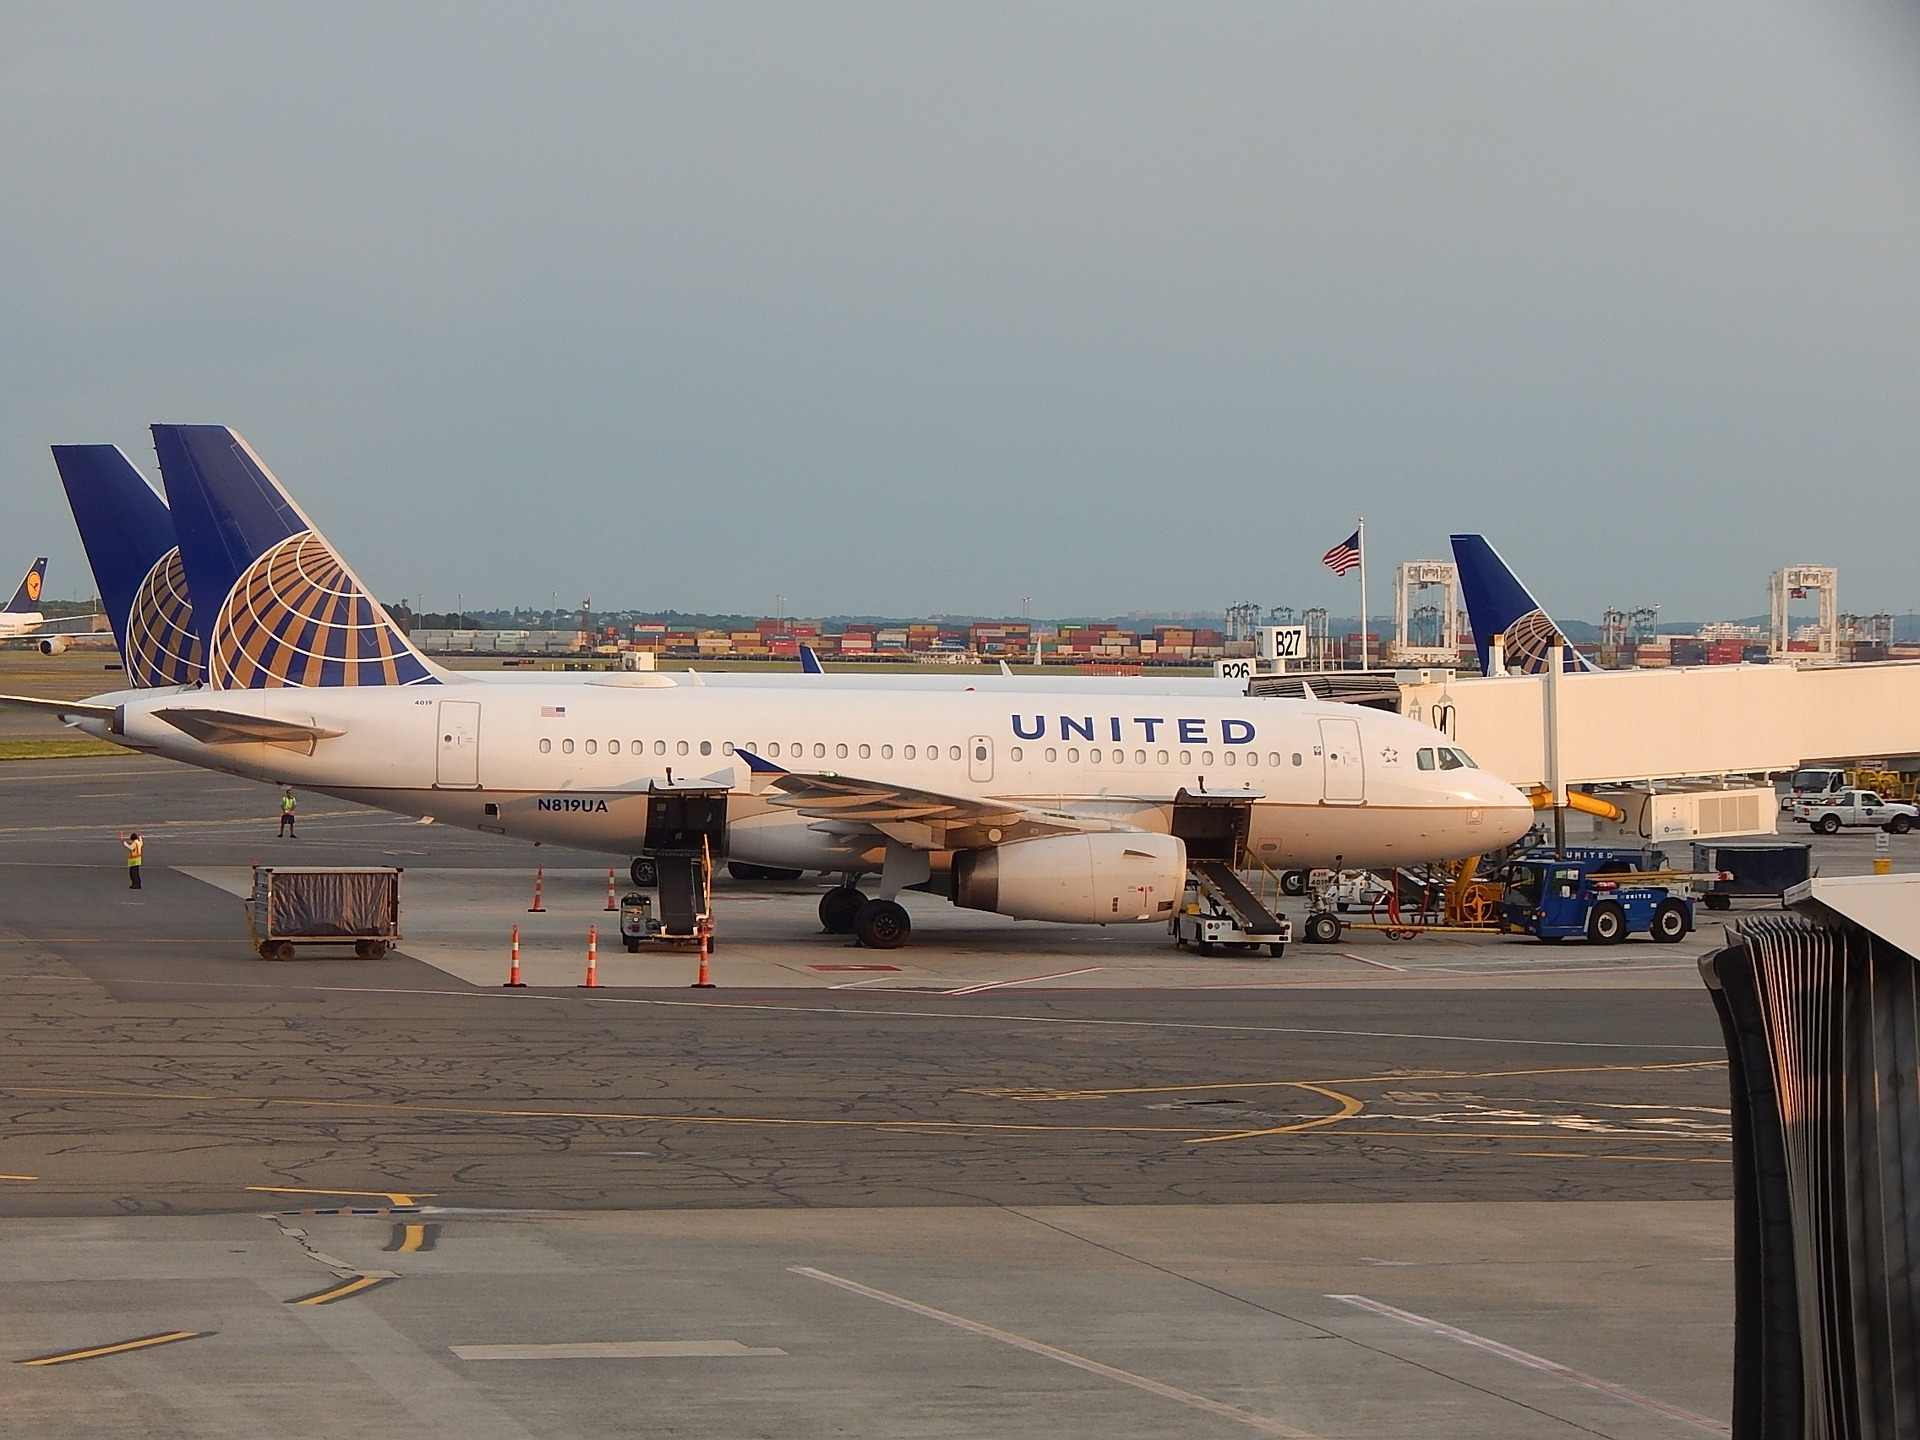 United Airlines has launched another promotion for their customers. Their new runway promotion can earn you up to 58,800 miles with qualifying spending.